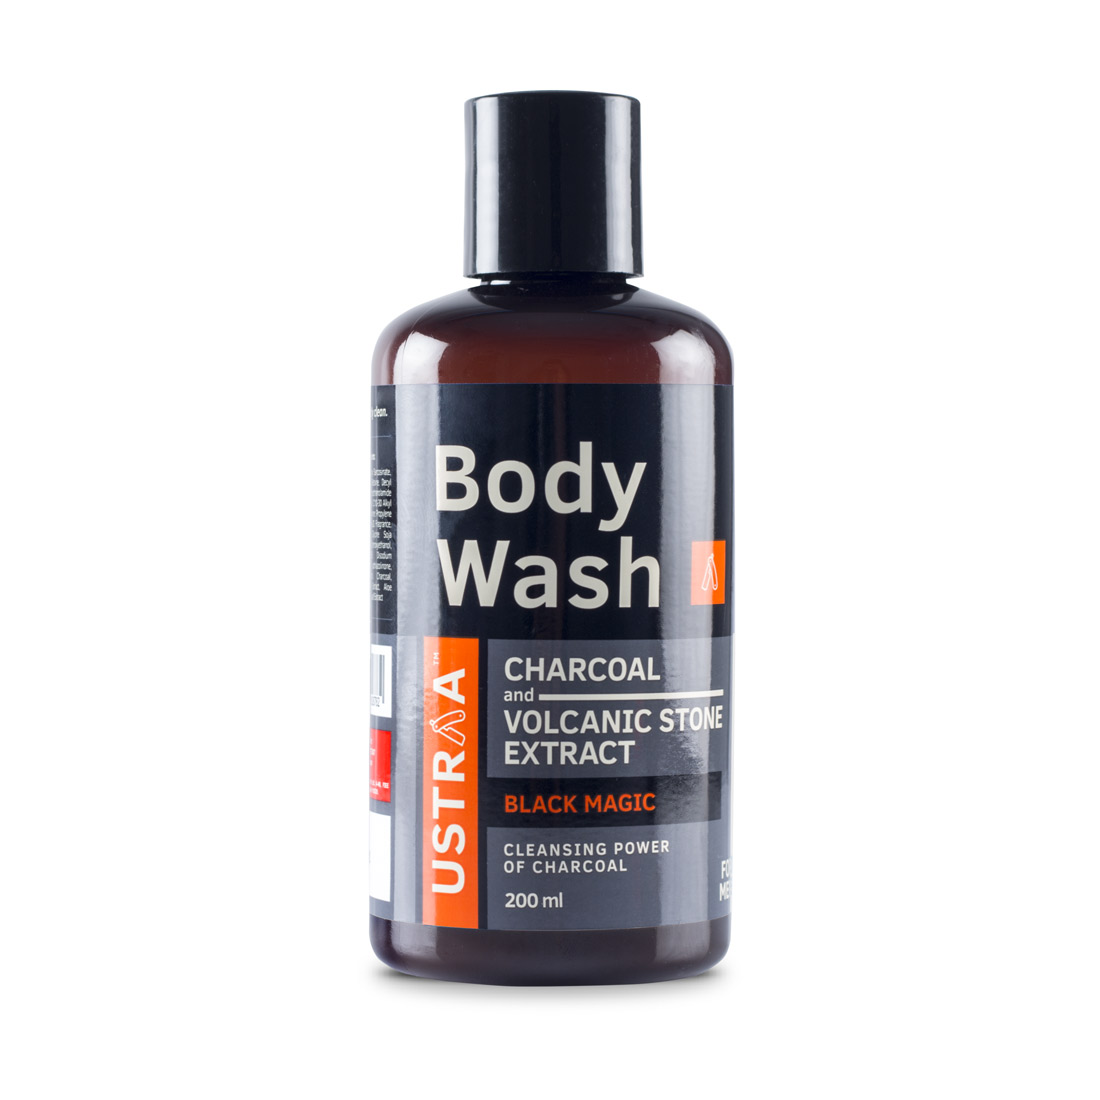 Body Wash - Black Magic - 200ml